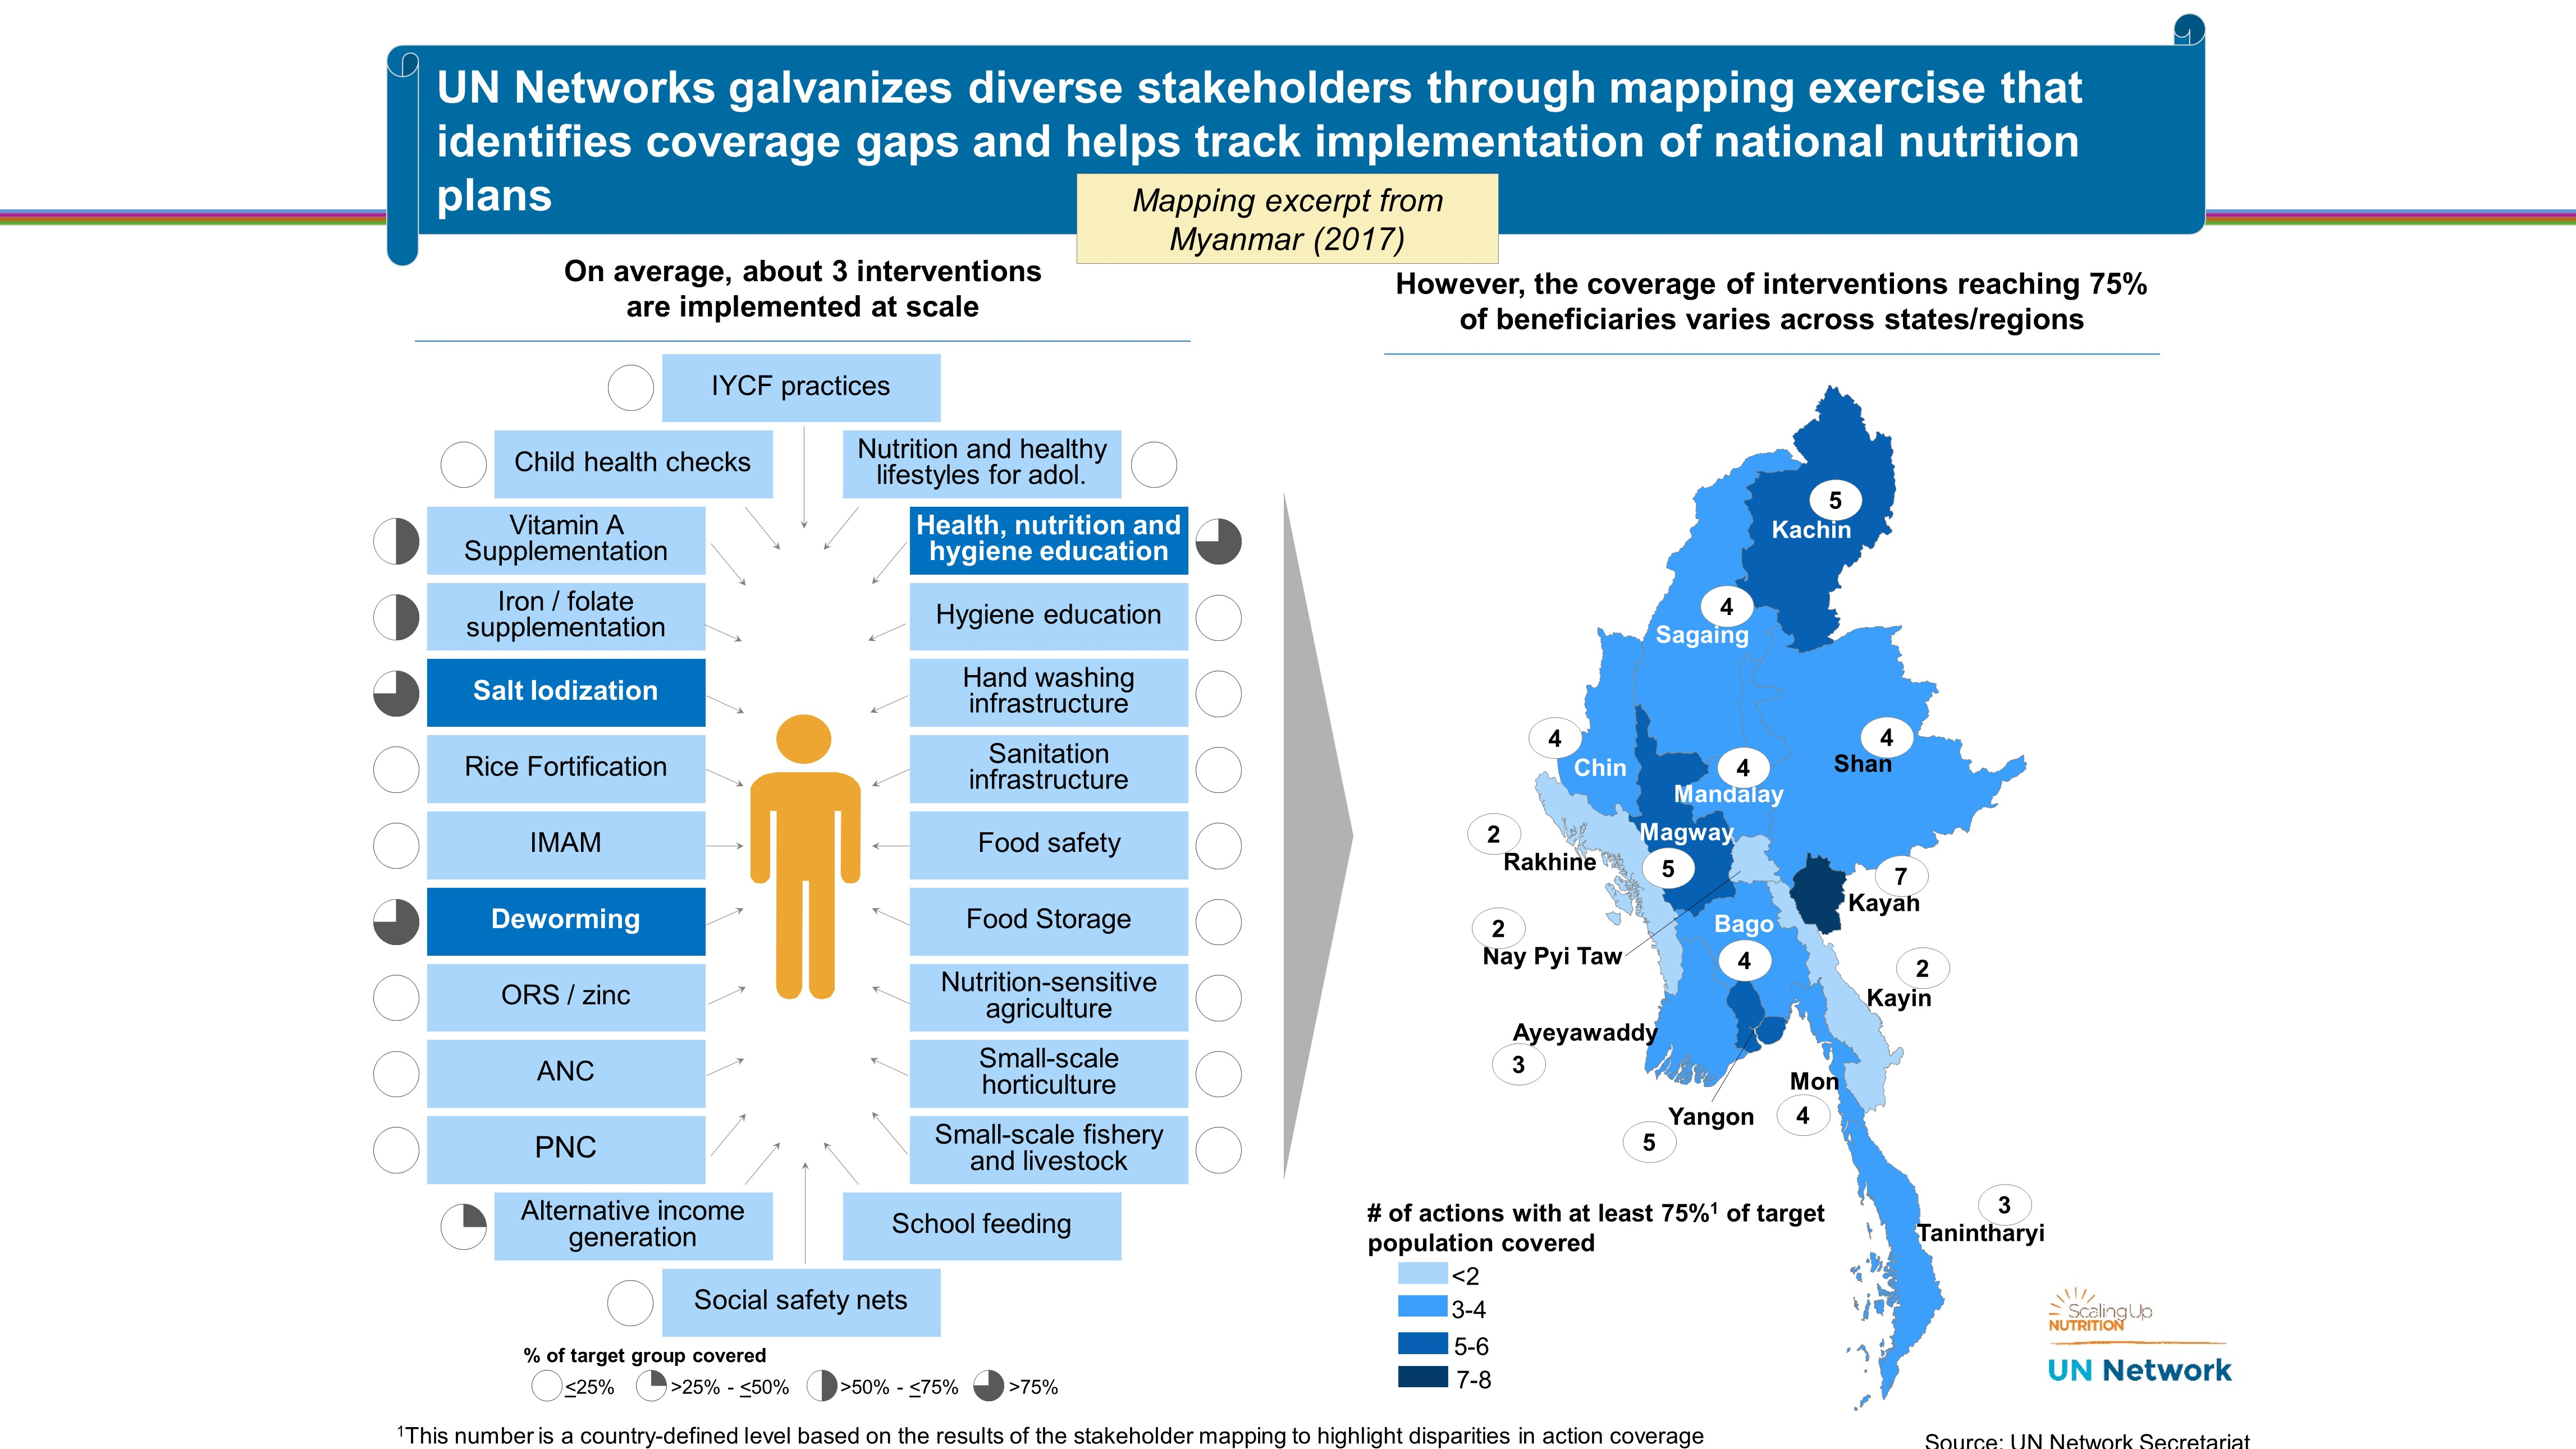 UN Network Nutrition Snapshot of Myanmar